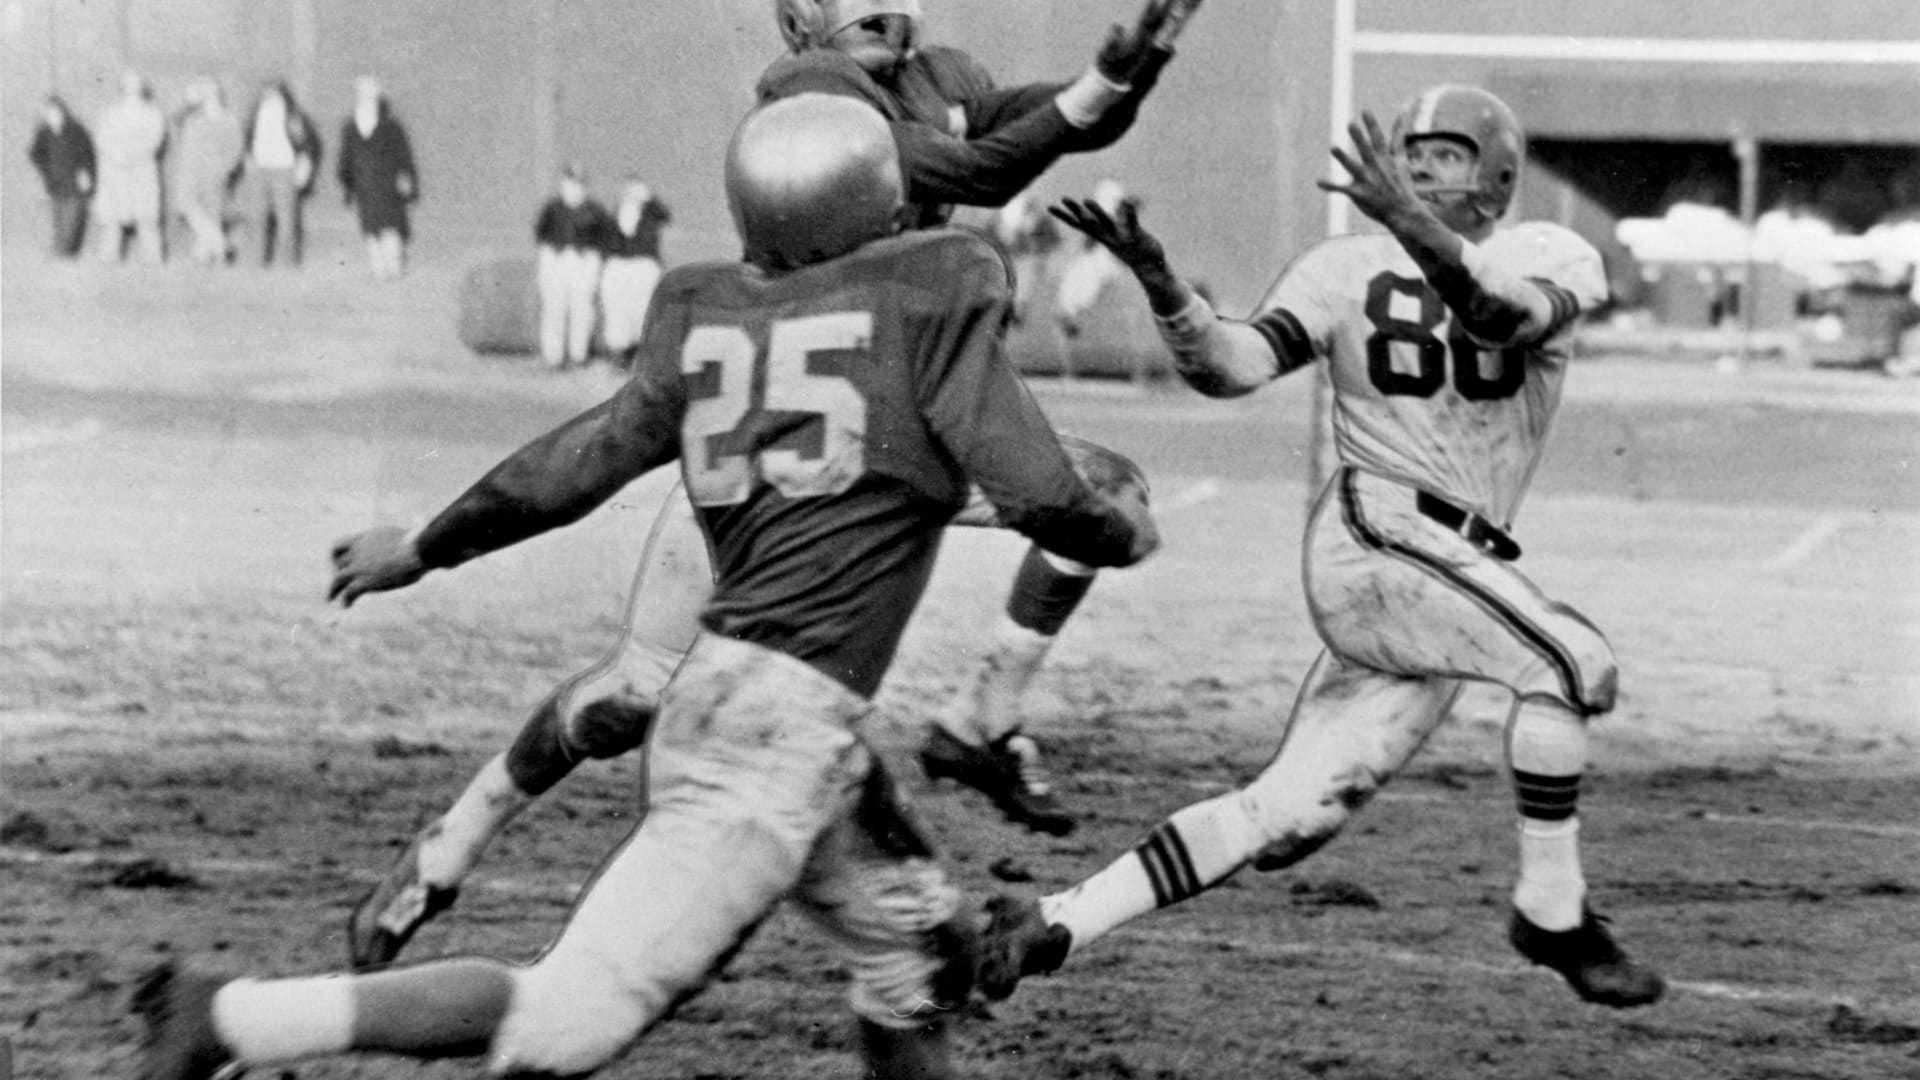 Top Five 1940s Cleveland Browns games to watch while social distancing